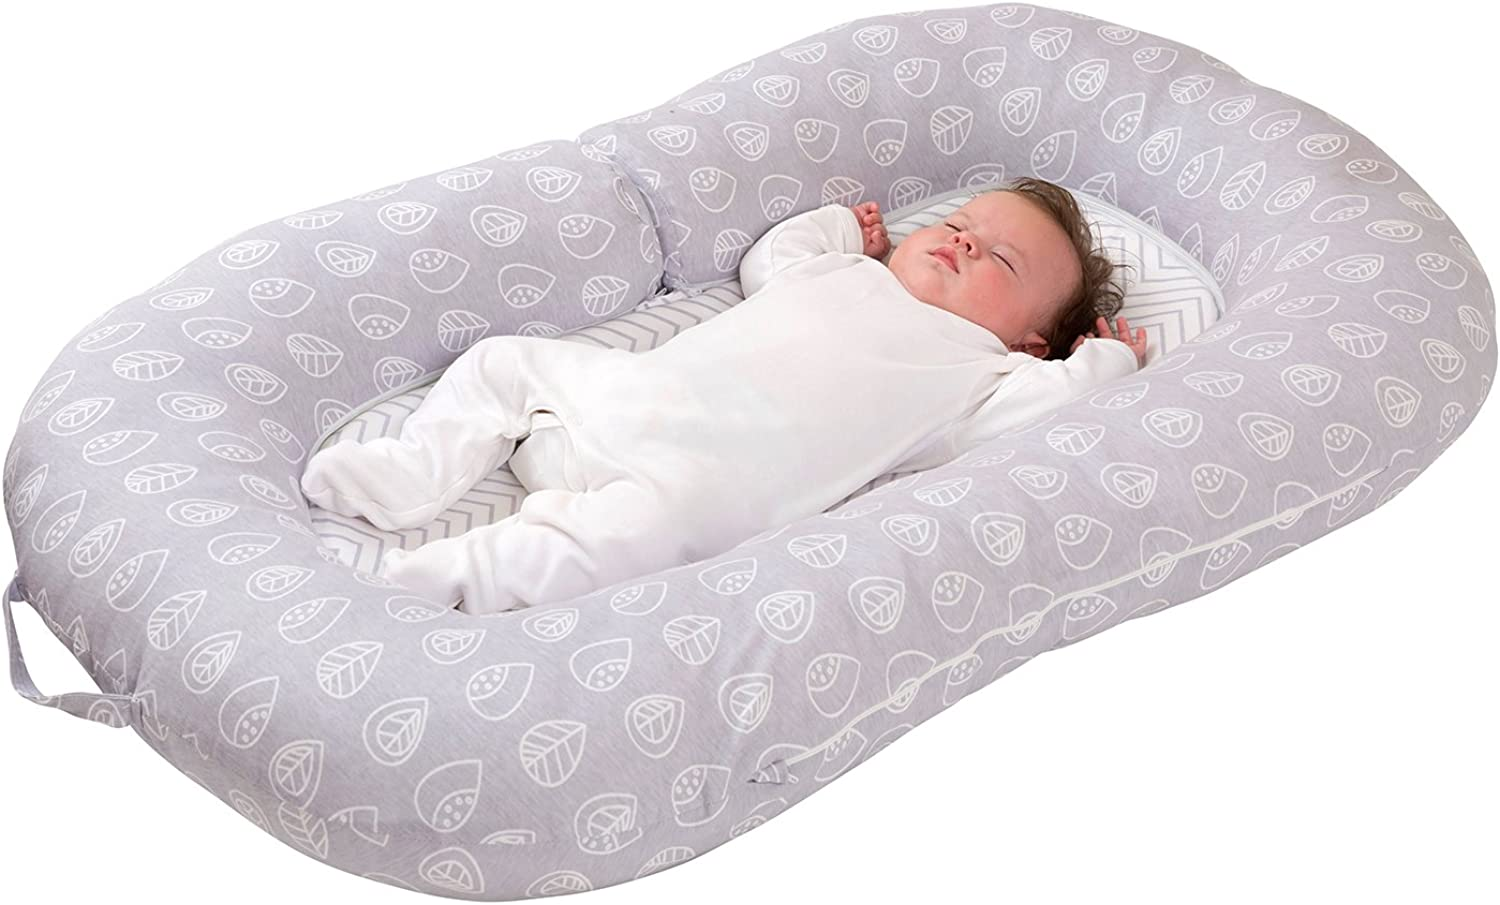 Clevamama Mum2me Sleep Pod Baby Nest and Maternity Pillow (0-12 Months), Grey white